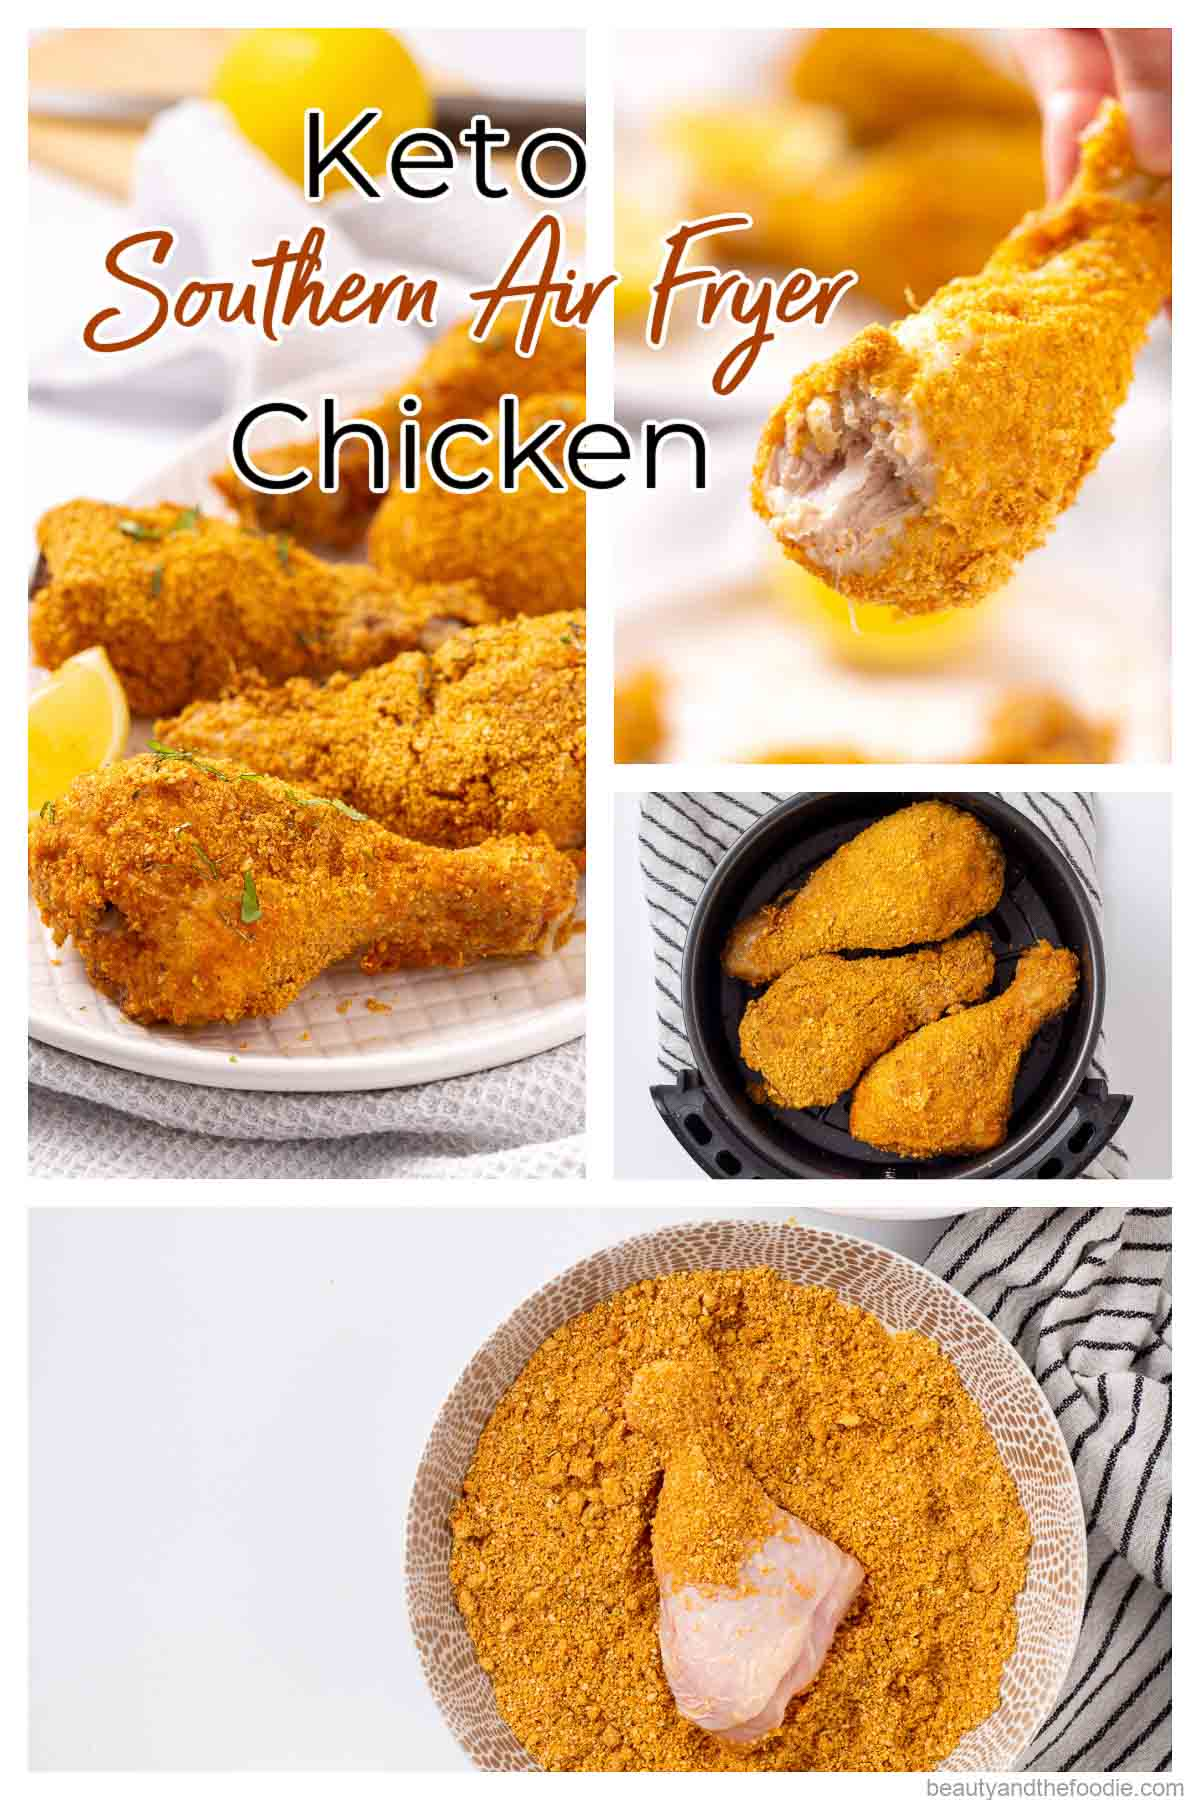 For photos of making keto air fryer chicken drumsticks.